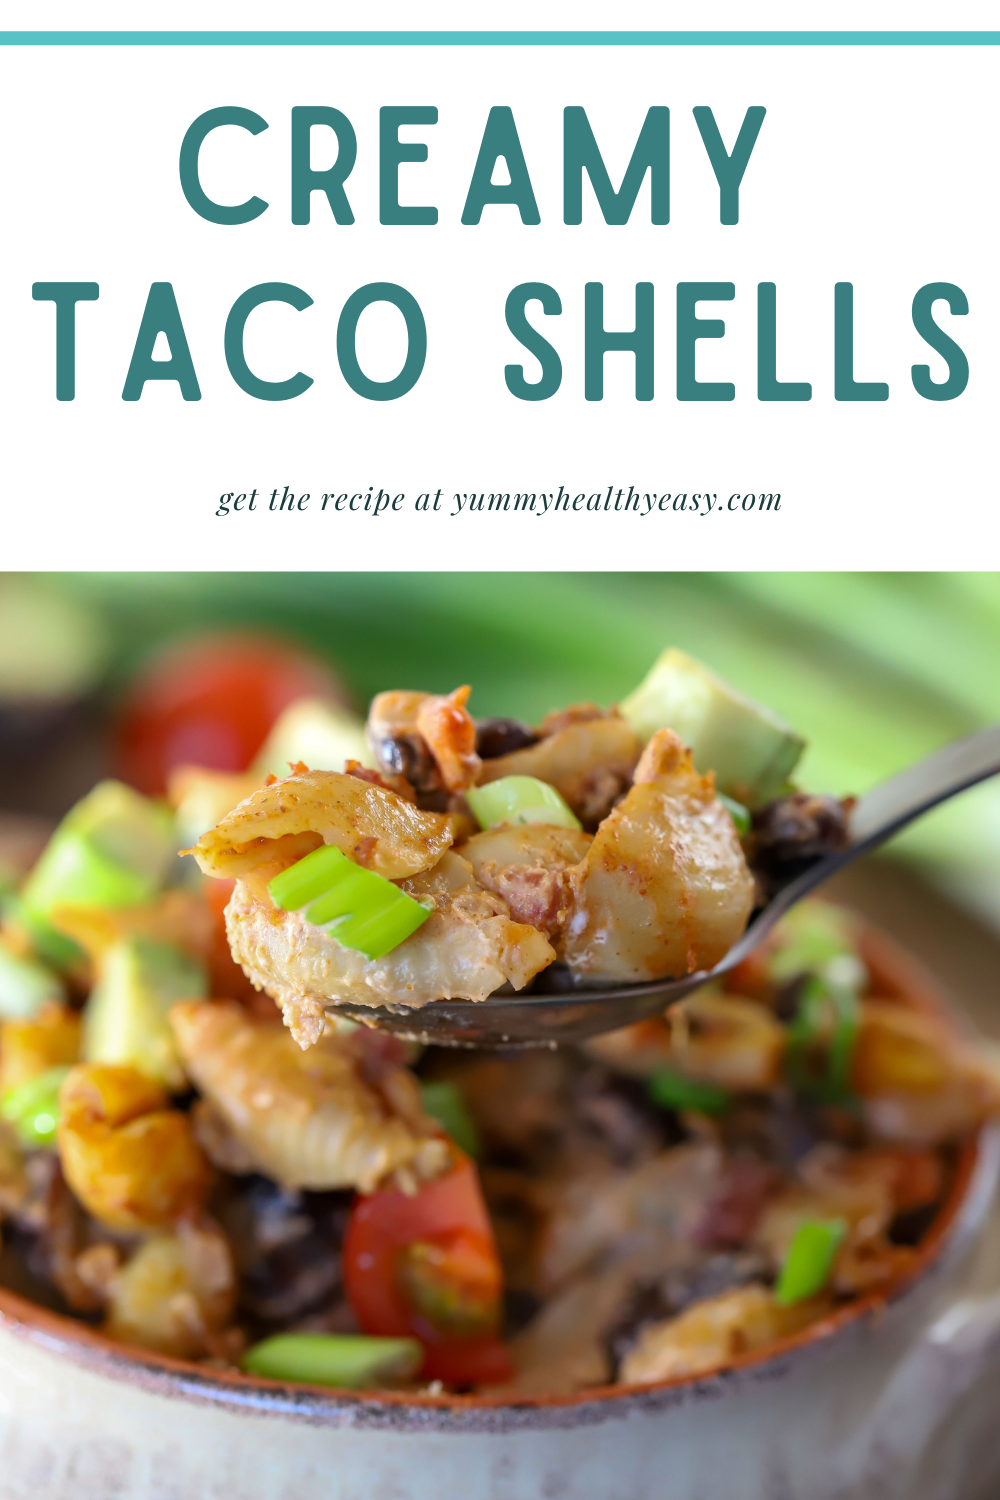 Looking for a change from your normal Taco Tuesday? Check out these Creamy Taco Shells! It's a quick 30-minute meal cooked all in one pan -ground turkey, black beans, taco seasoning and whole-wheat shells combined to make a hearty, healthy, delicious weeknight dinner! via @jennikolaus